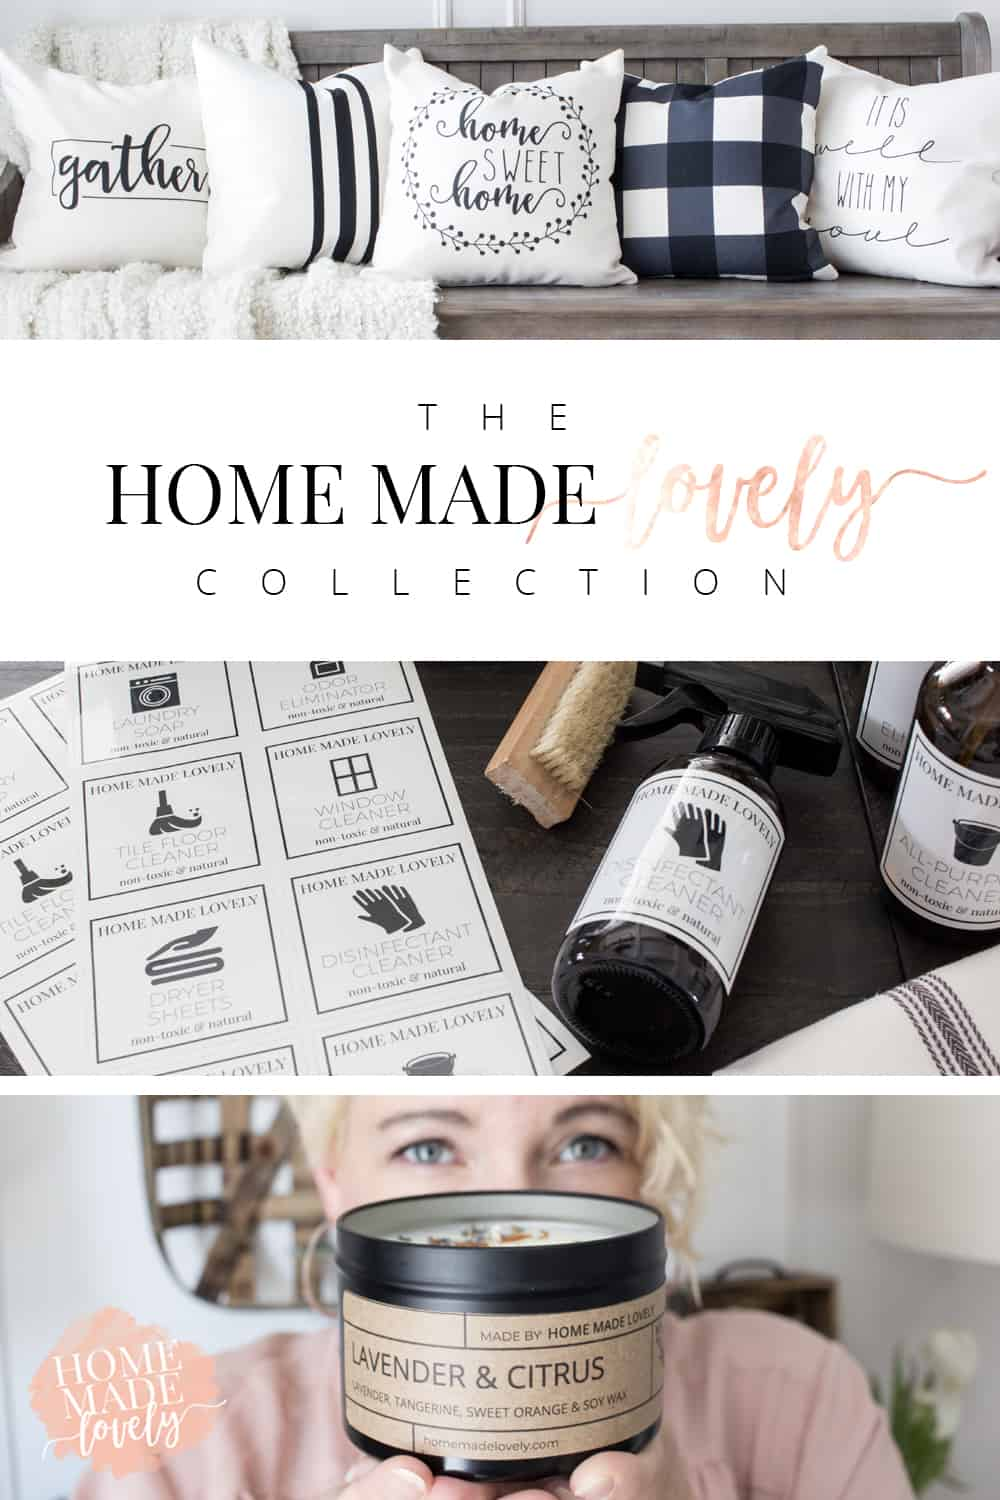 Our collection of modern farmhouse-inspired home decor is finally here! Introducing The Home Made Lovely Collection.